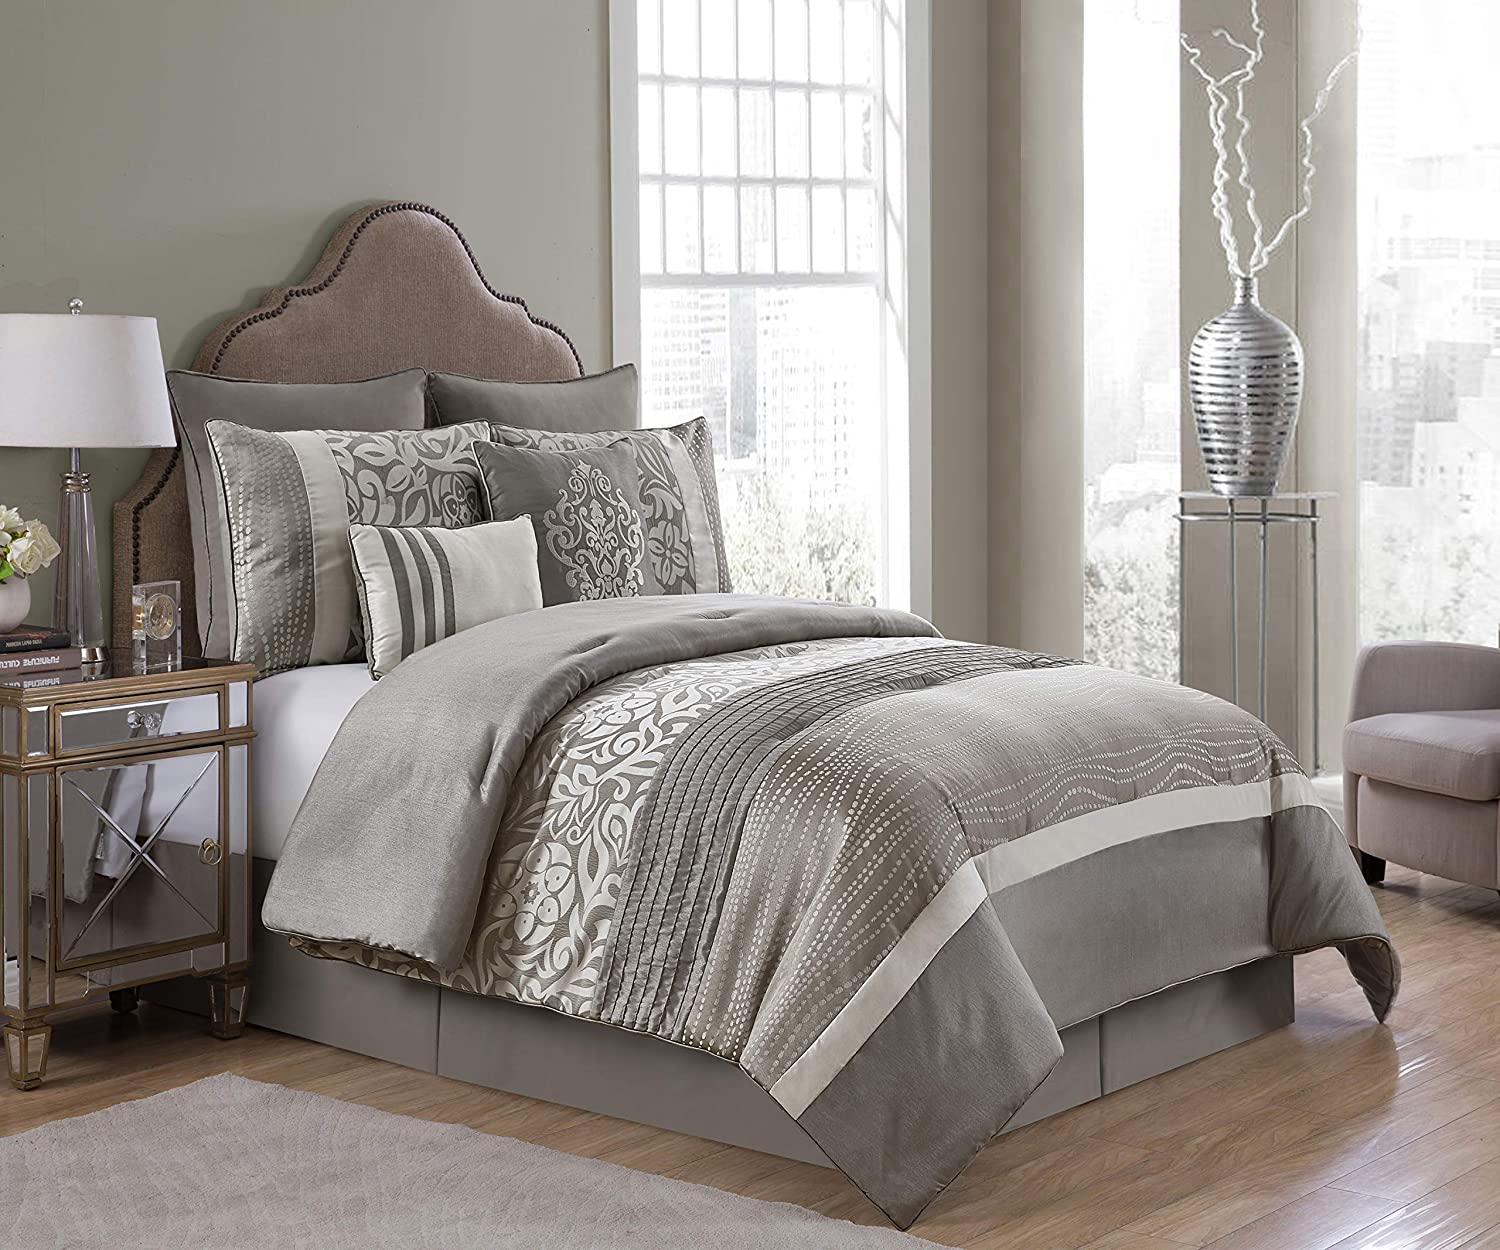 Amazon Com Vcny Home Arcadia Collection Floral Accent Embroidered Comforter Premium Microfiber 8 Piece Bedding Set Elegant And Chic Design For Home Decor King Taupe Home Kitchen